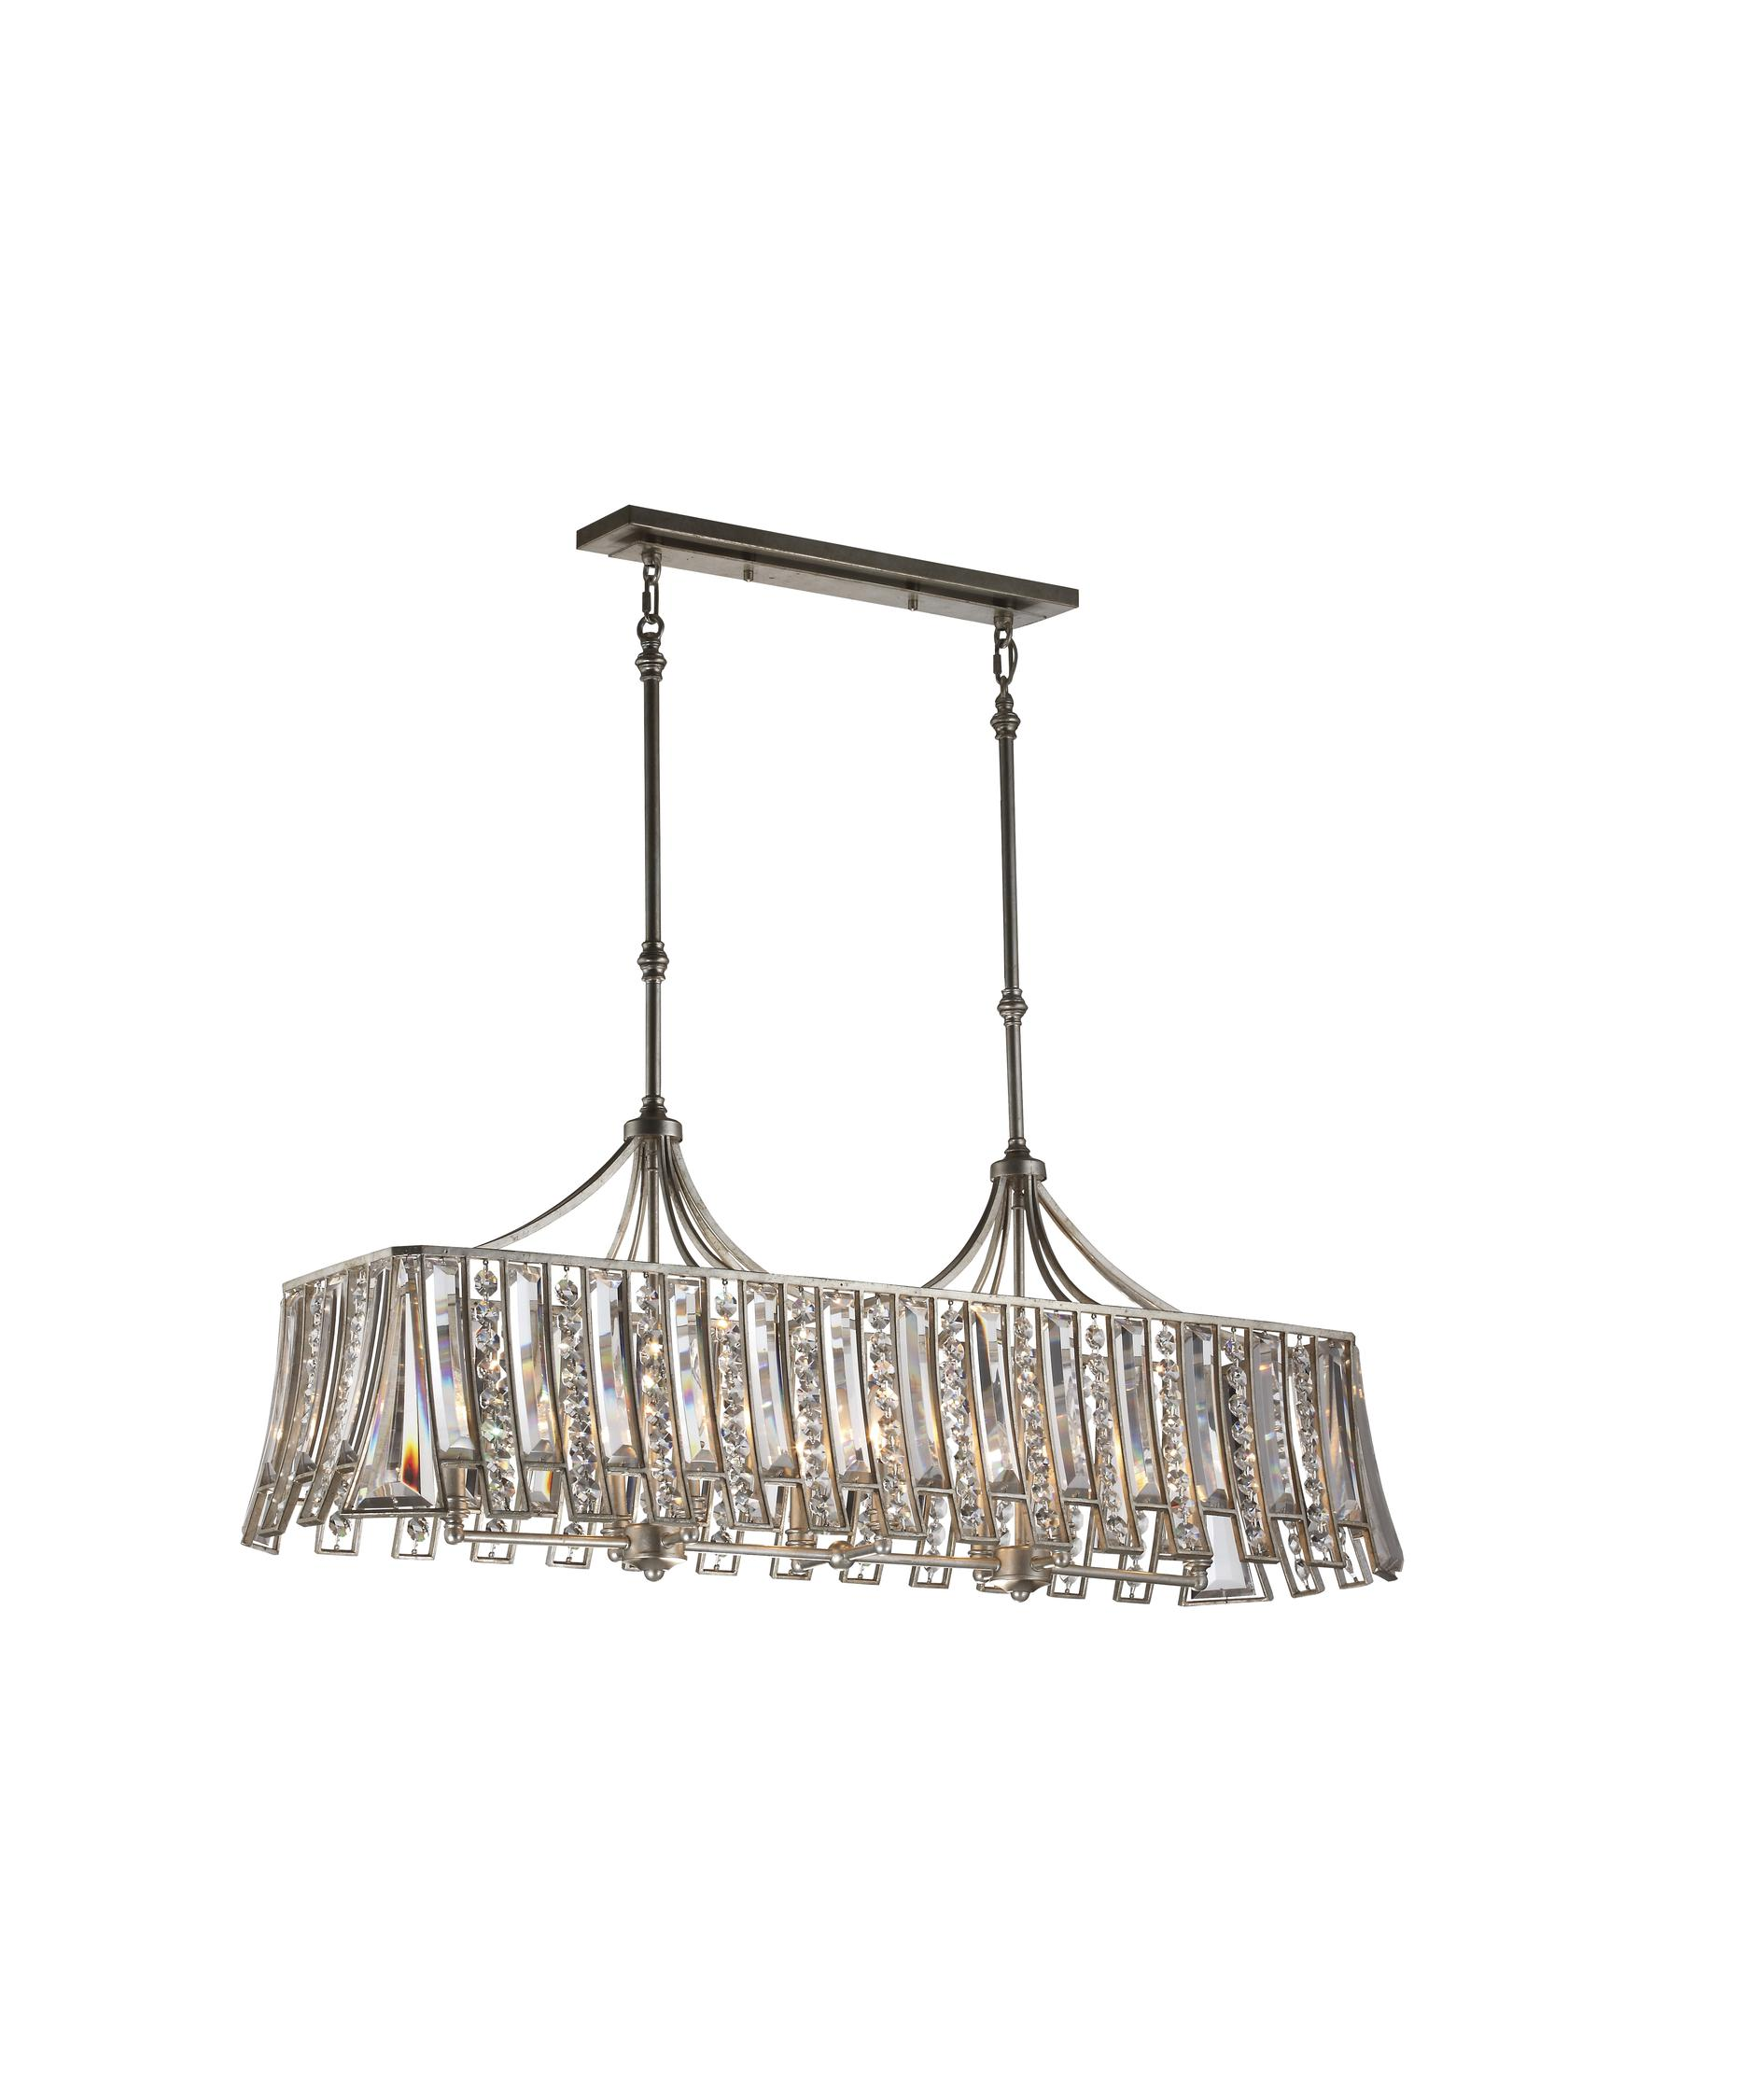 Murray Feiss Soros 48 Inch Wide Island Light – Murray Feiss Chandeliers